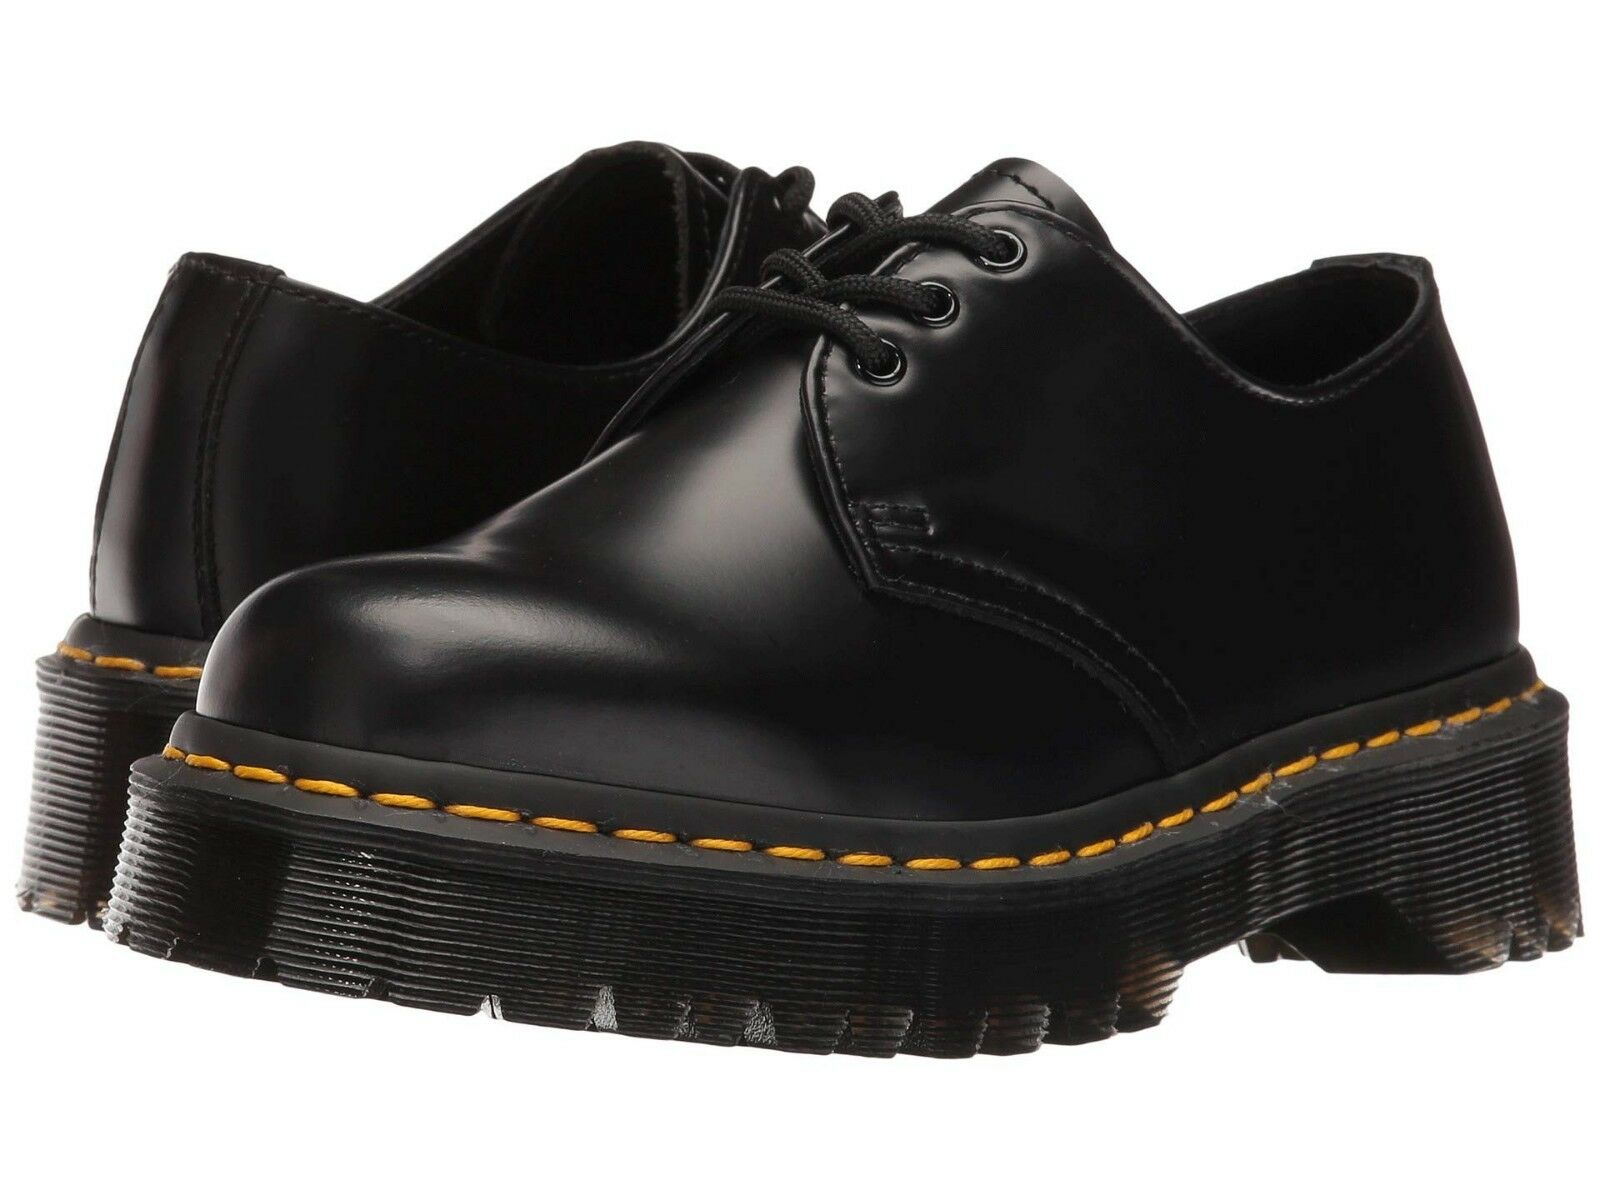 NEW Mens Dr Martens 1461 Bex 3 Eye Black Smooth Leather Bex Oxford shoes